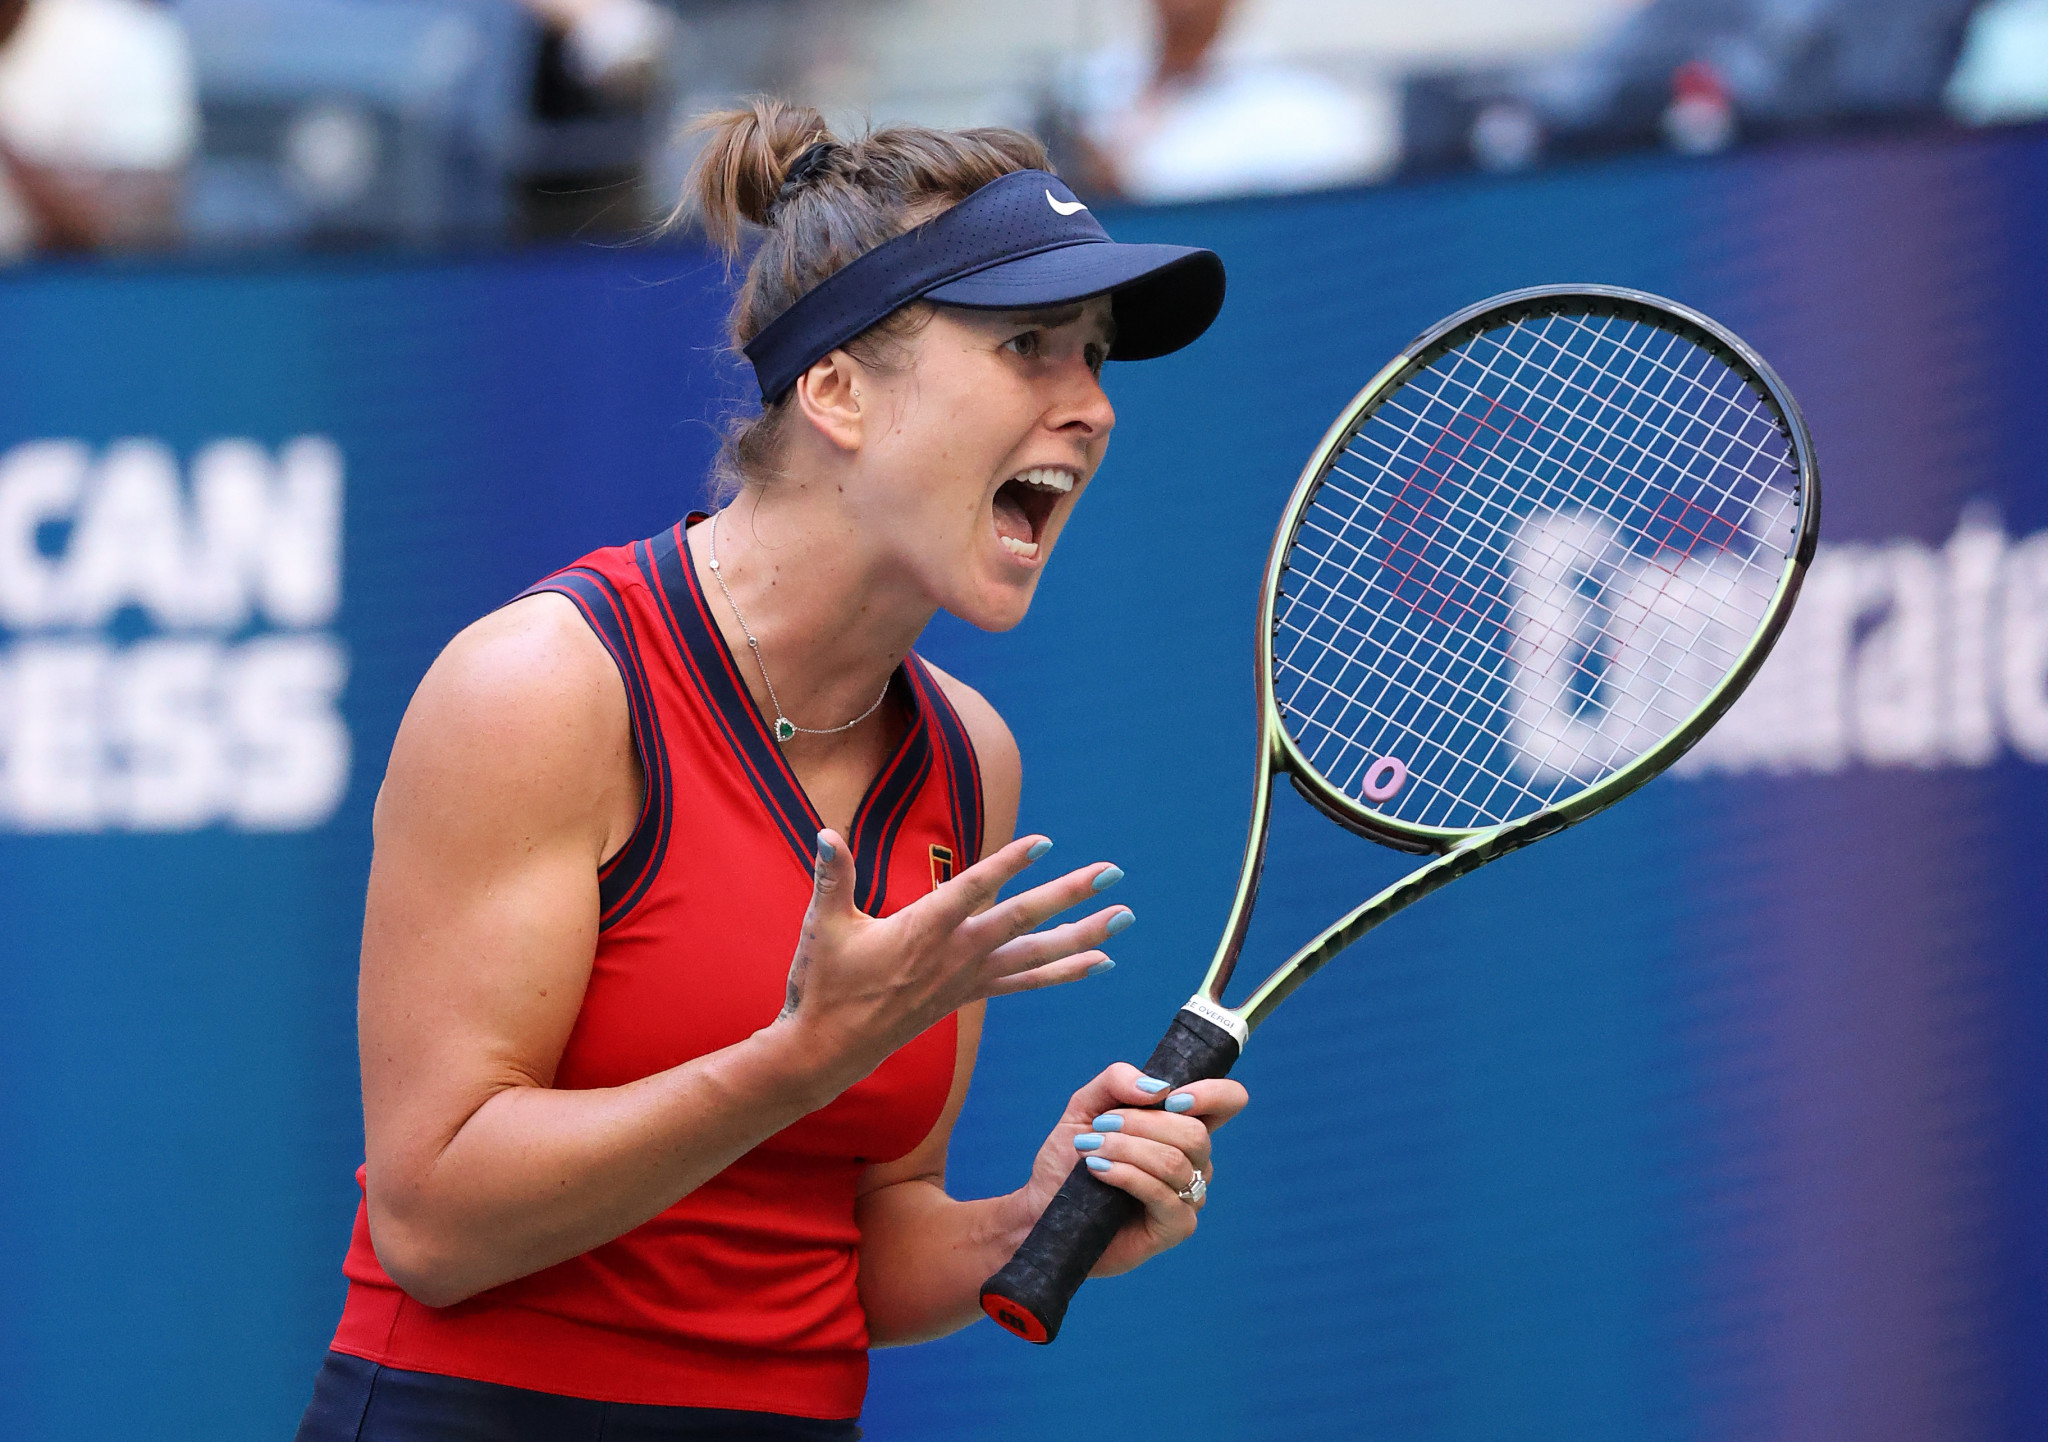 Ukraine's Svitolina, seeded fifth, is the third ranked player in a row to lose to Fernandez ©Getty Images